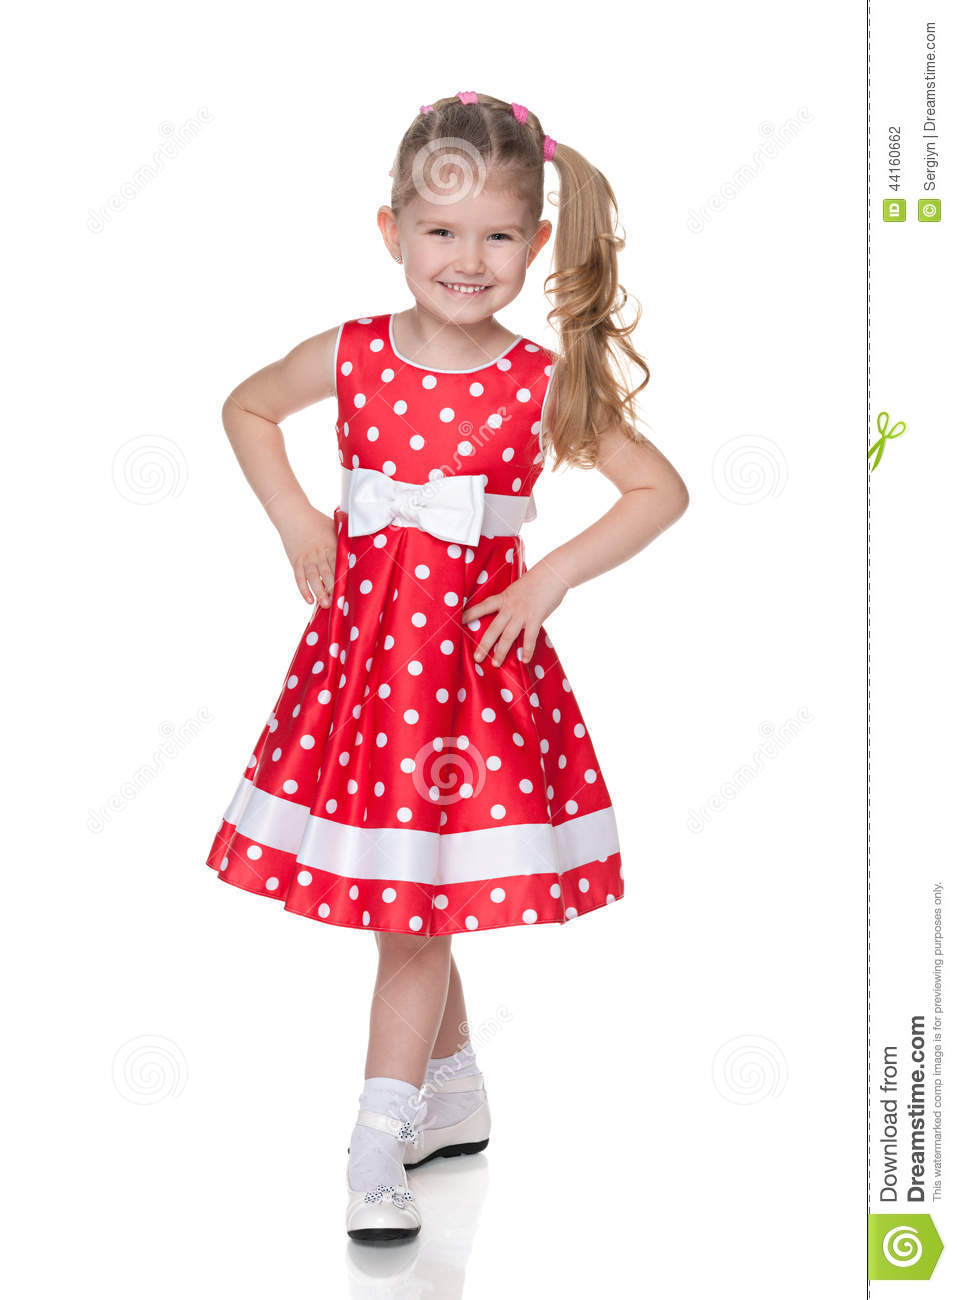 Little Girl In The Polka Dot Dress Stock Photo - Image: 44160662